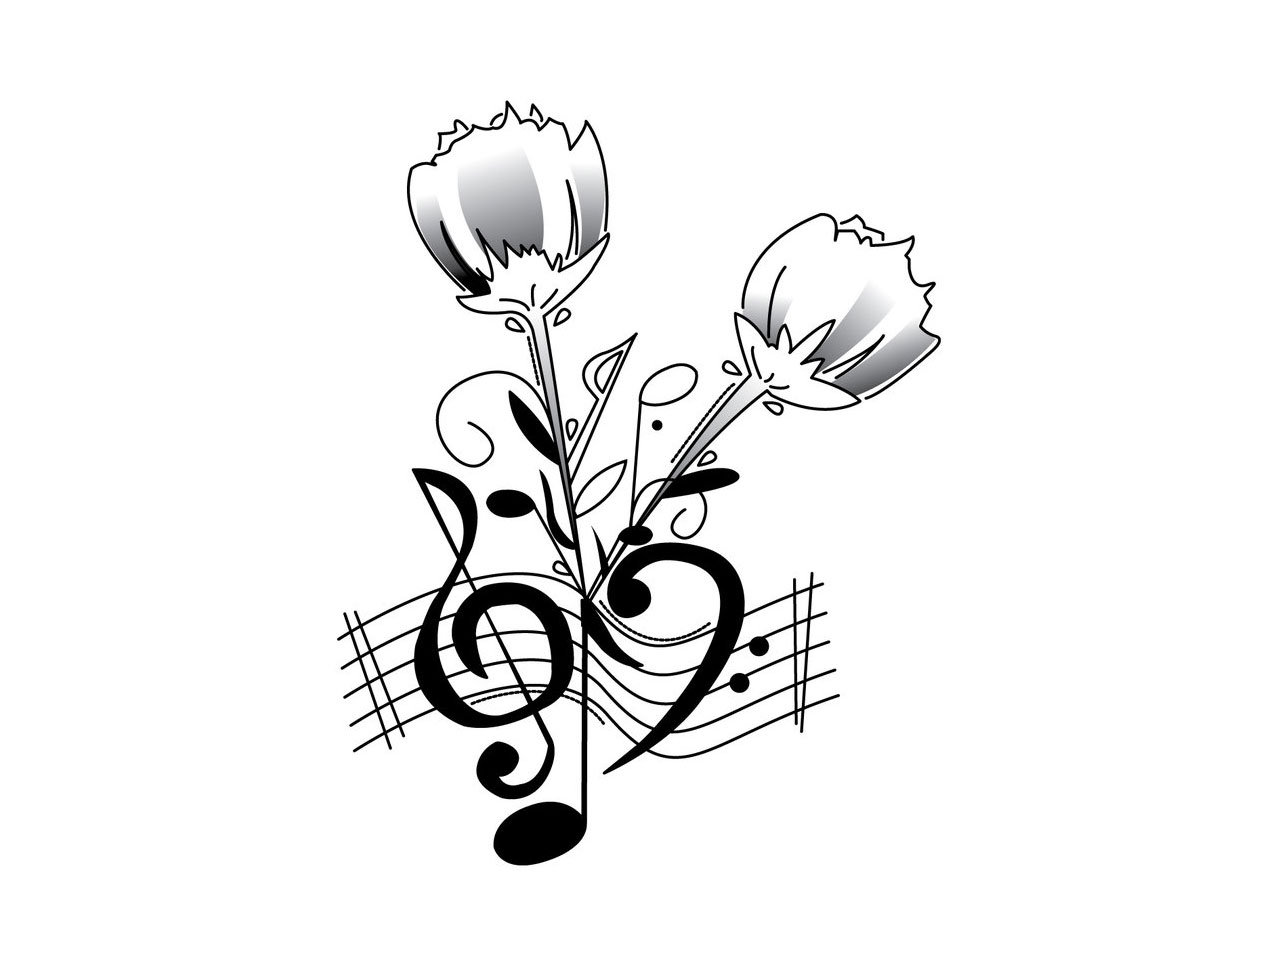 1280x960 Music Notes Heart Background Wallpaper I Hd Images